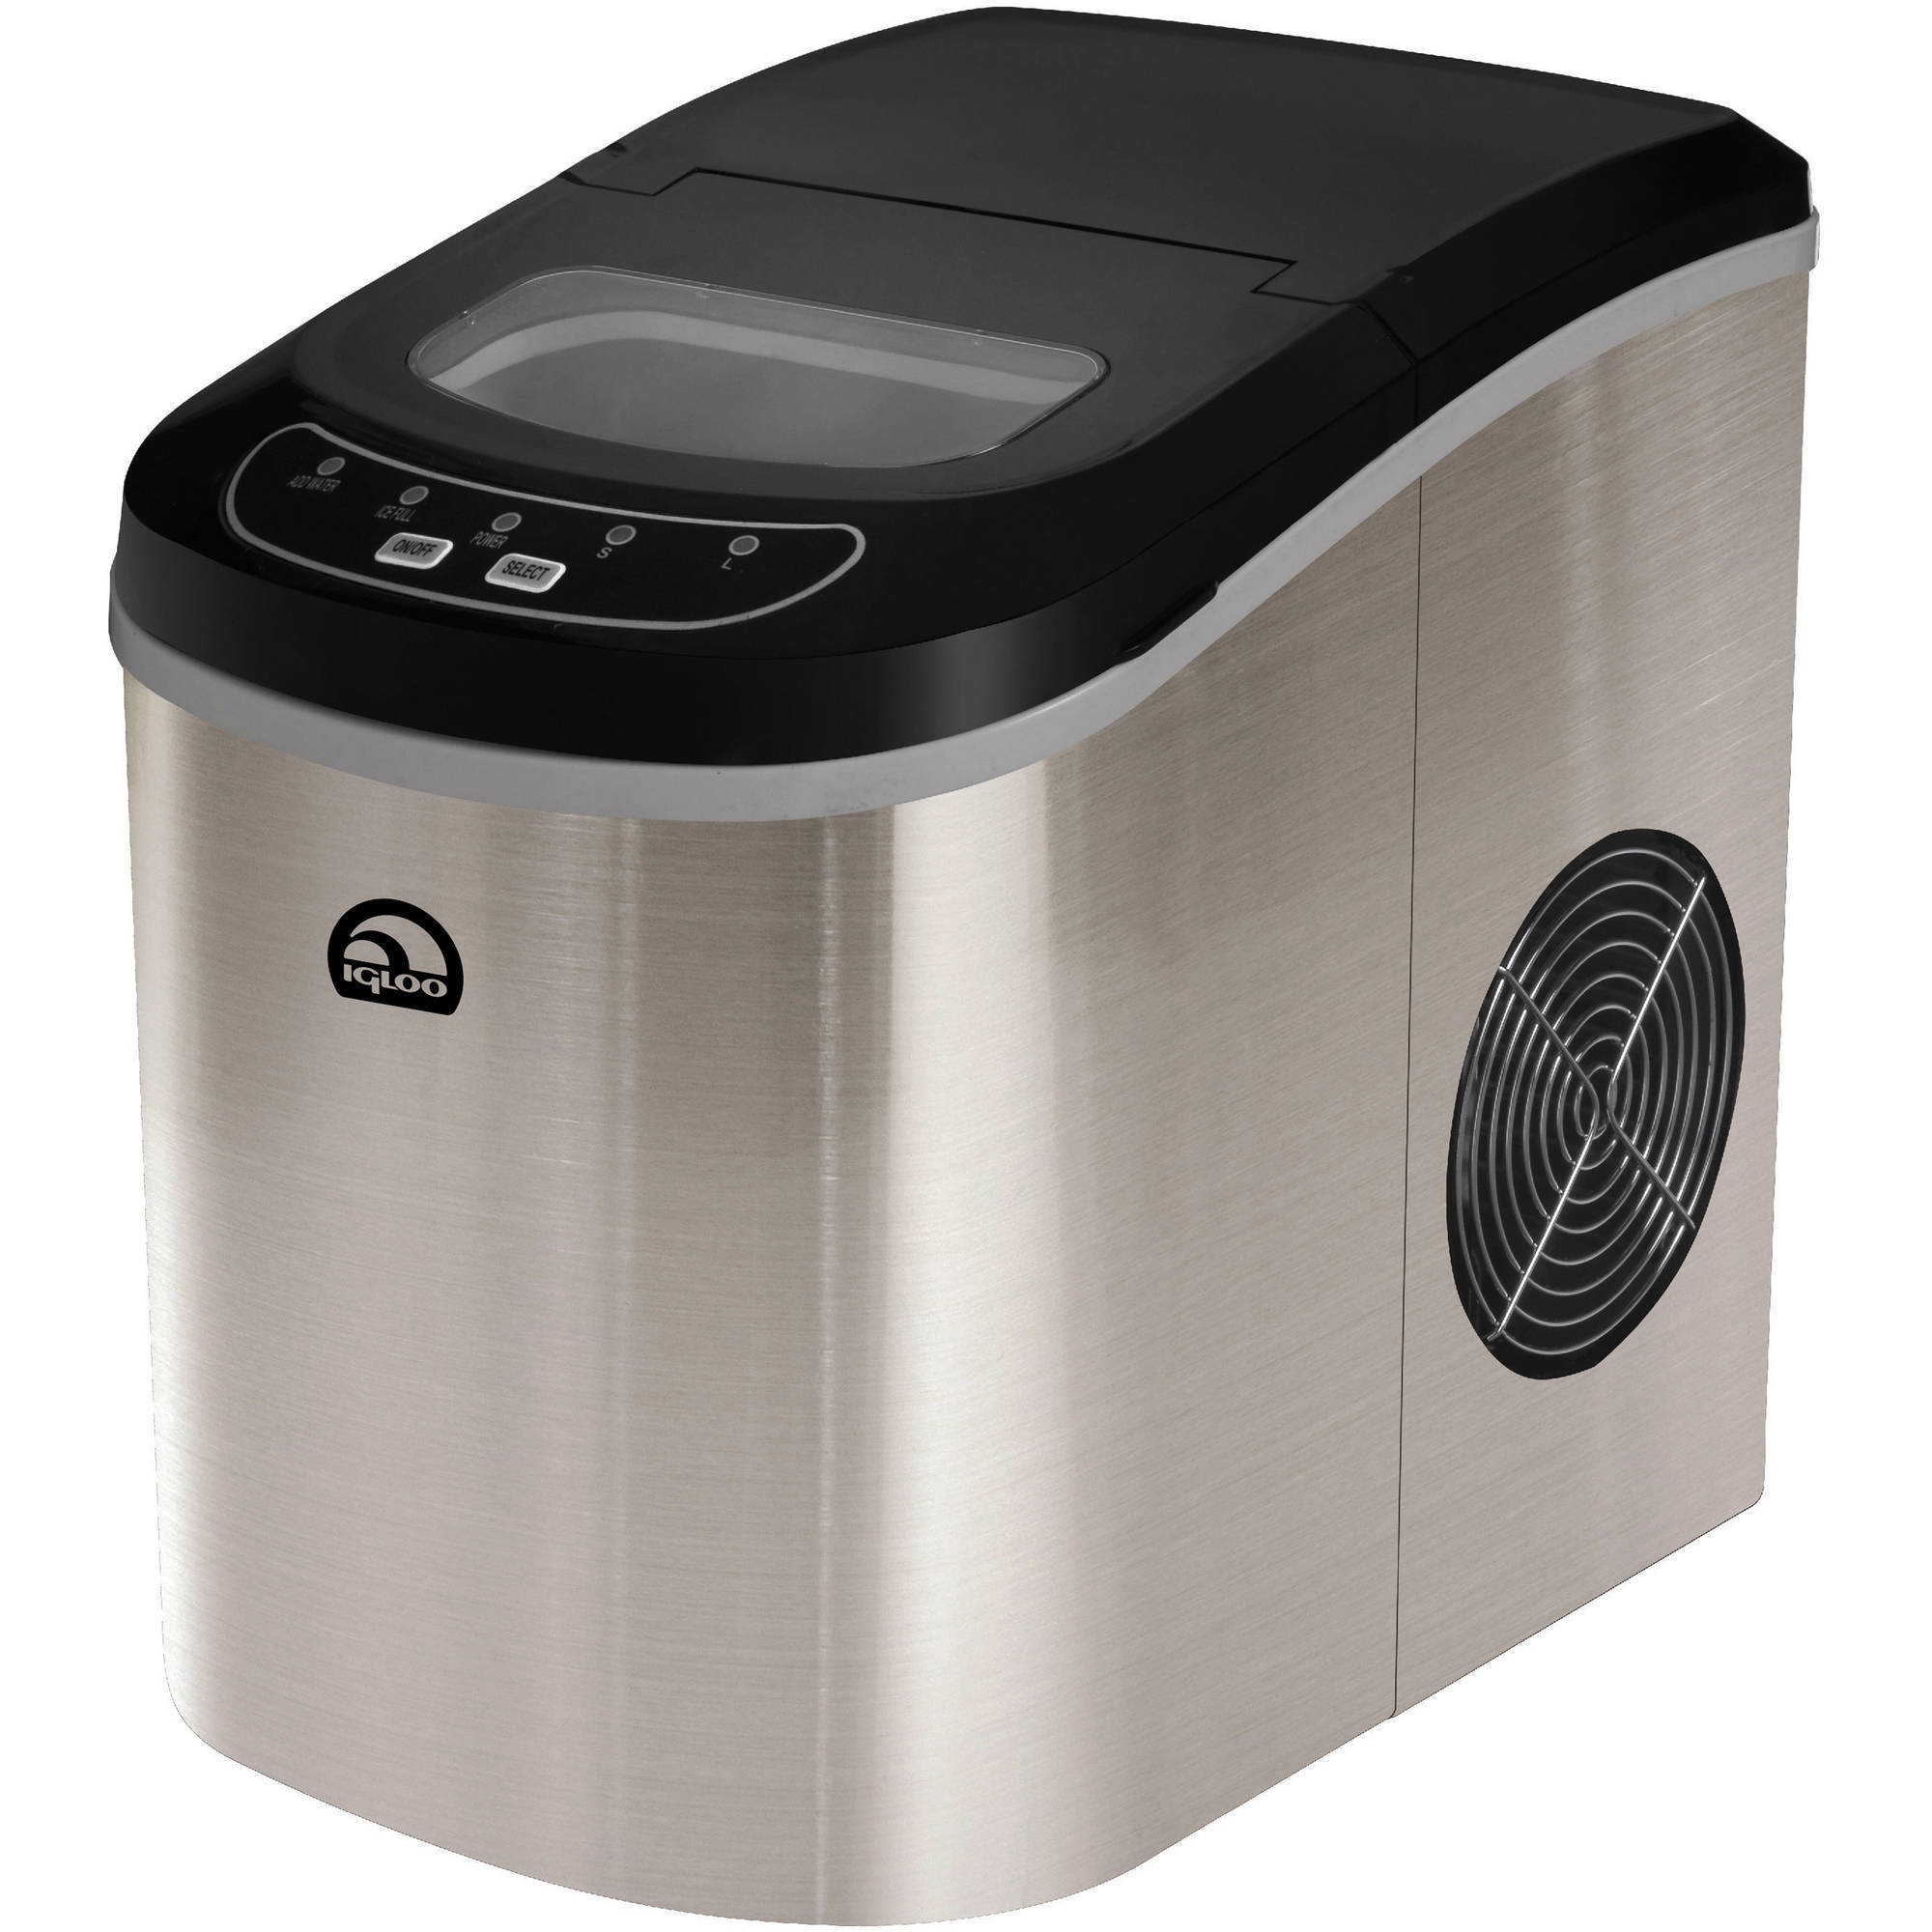 Igloo Stainless Steel Compact Ice Maker Overstock 13286591